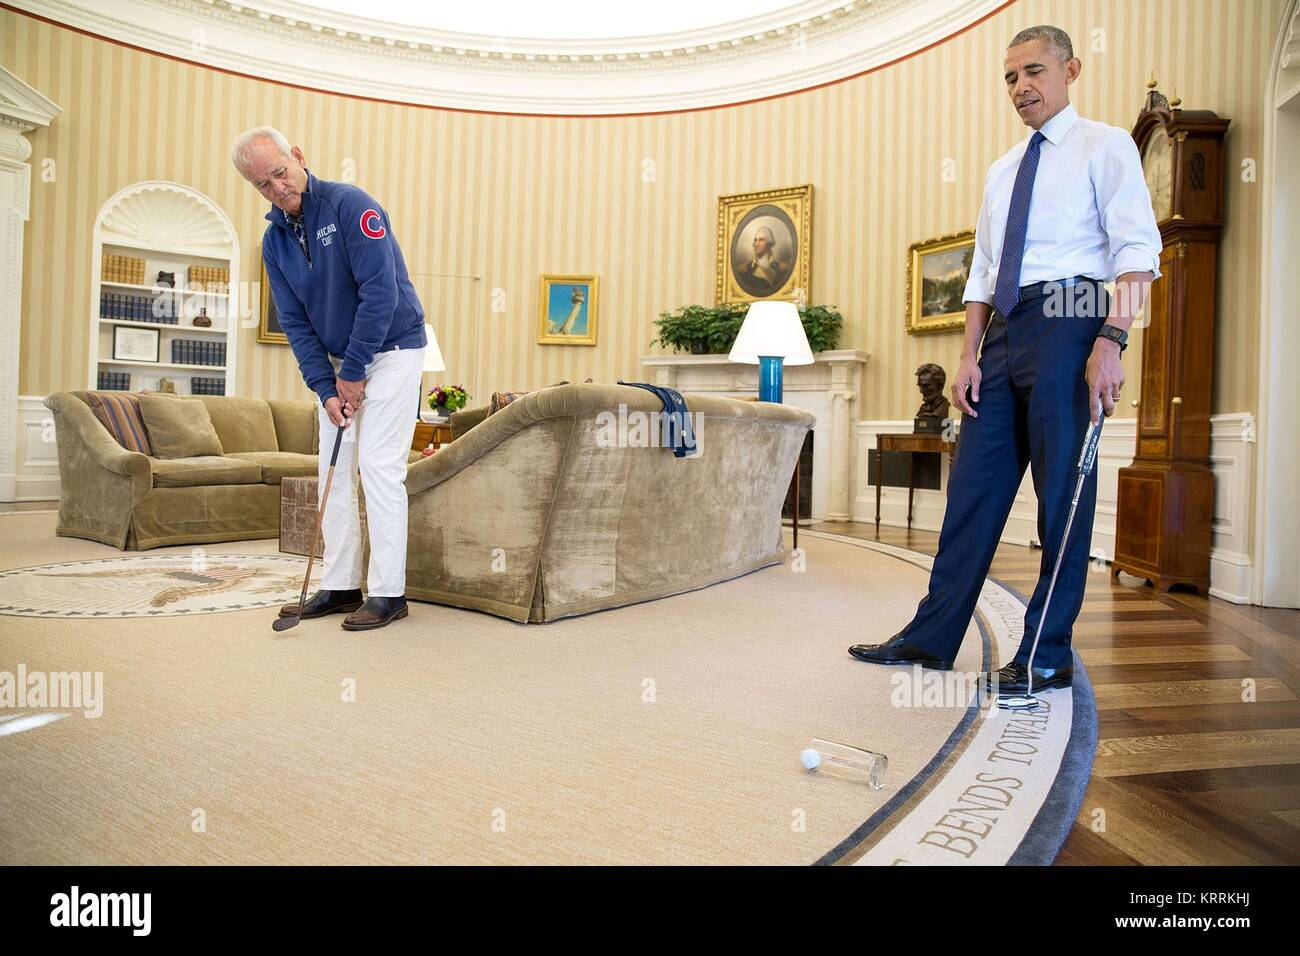 Actor Bill Murray and U.S. President Barack Obama play putt putt golf in the White House Oval Office October 21, - Stock Image